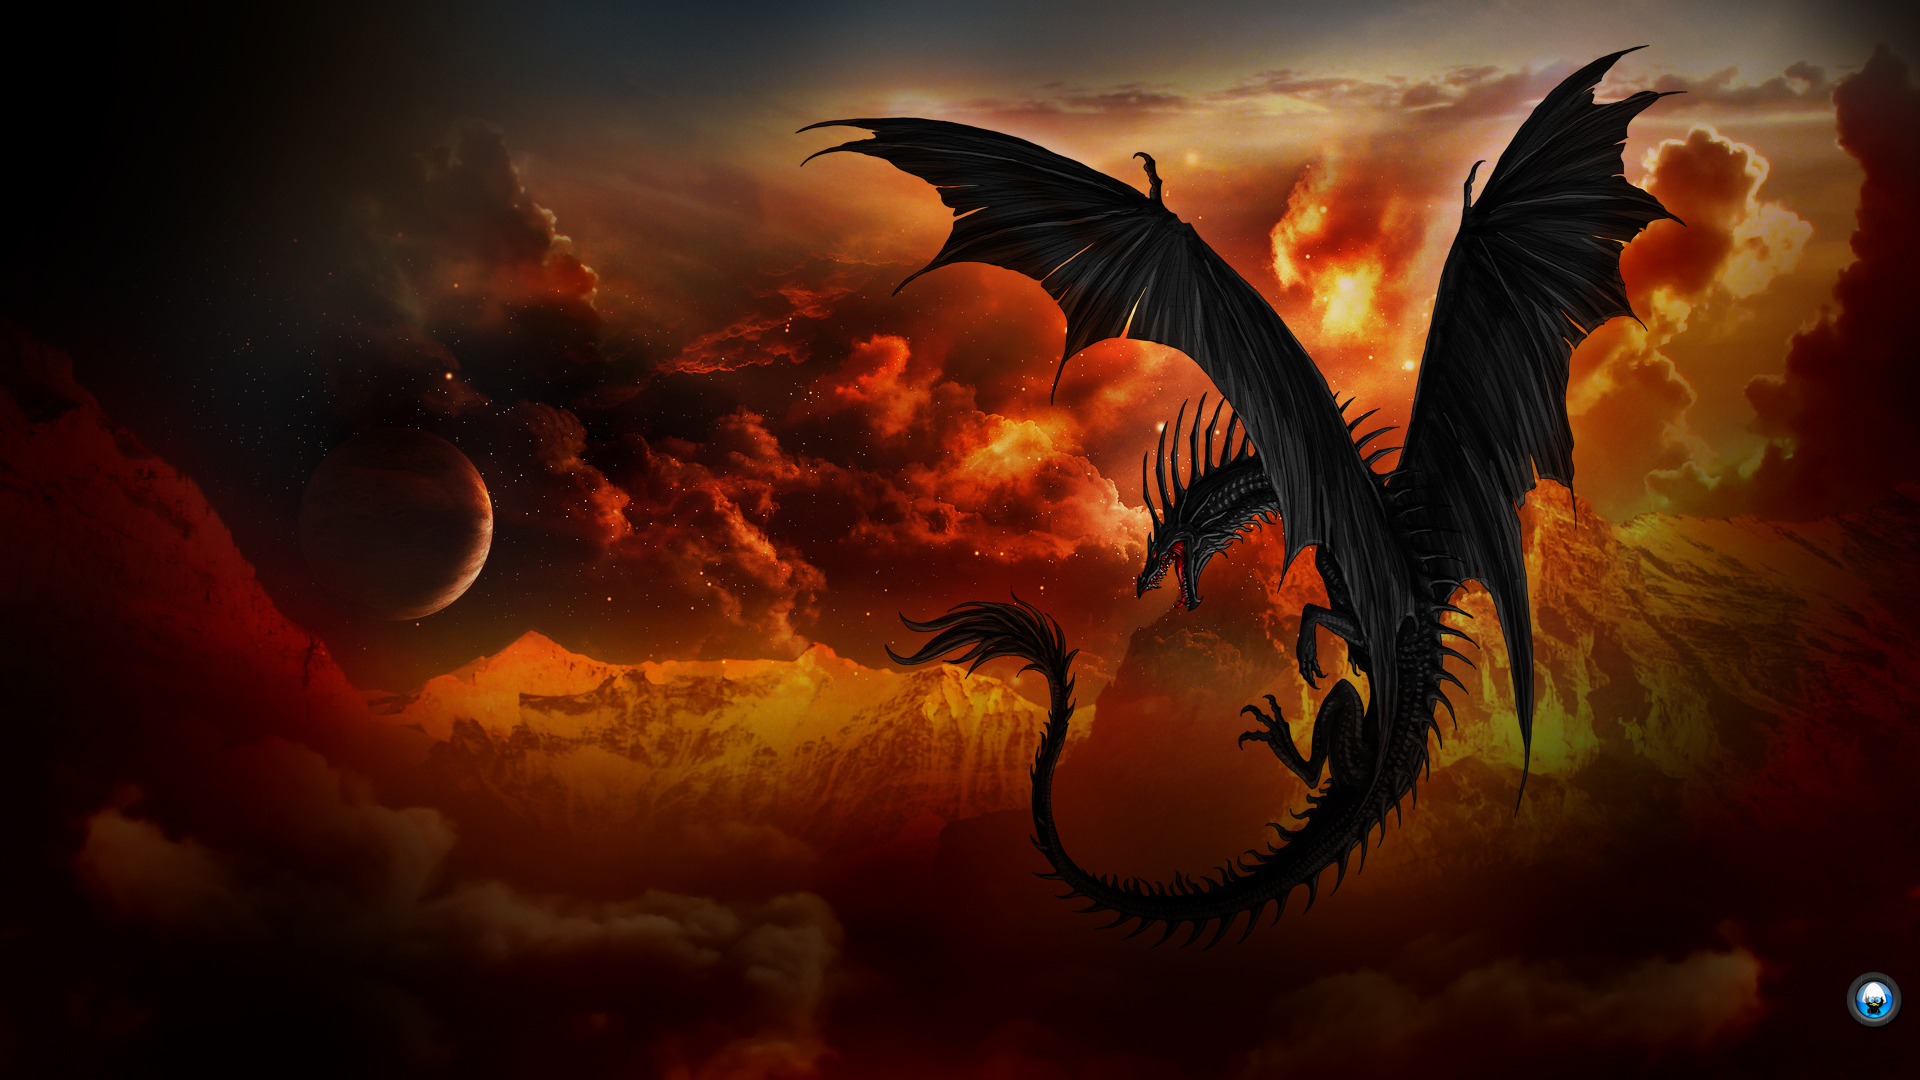 Dragon wallpaper 1920x1080 1   hebusorg   High Definition 1920x1080